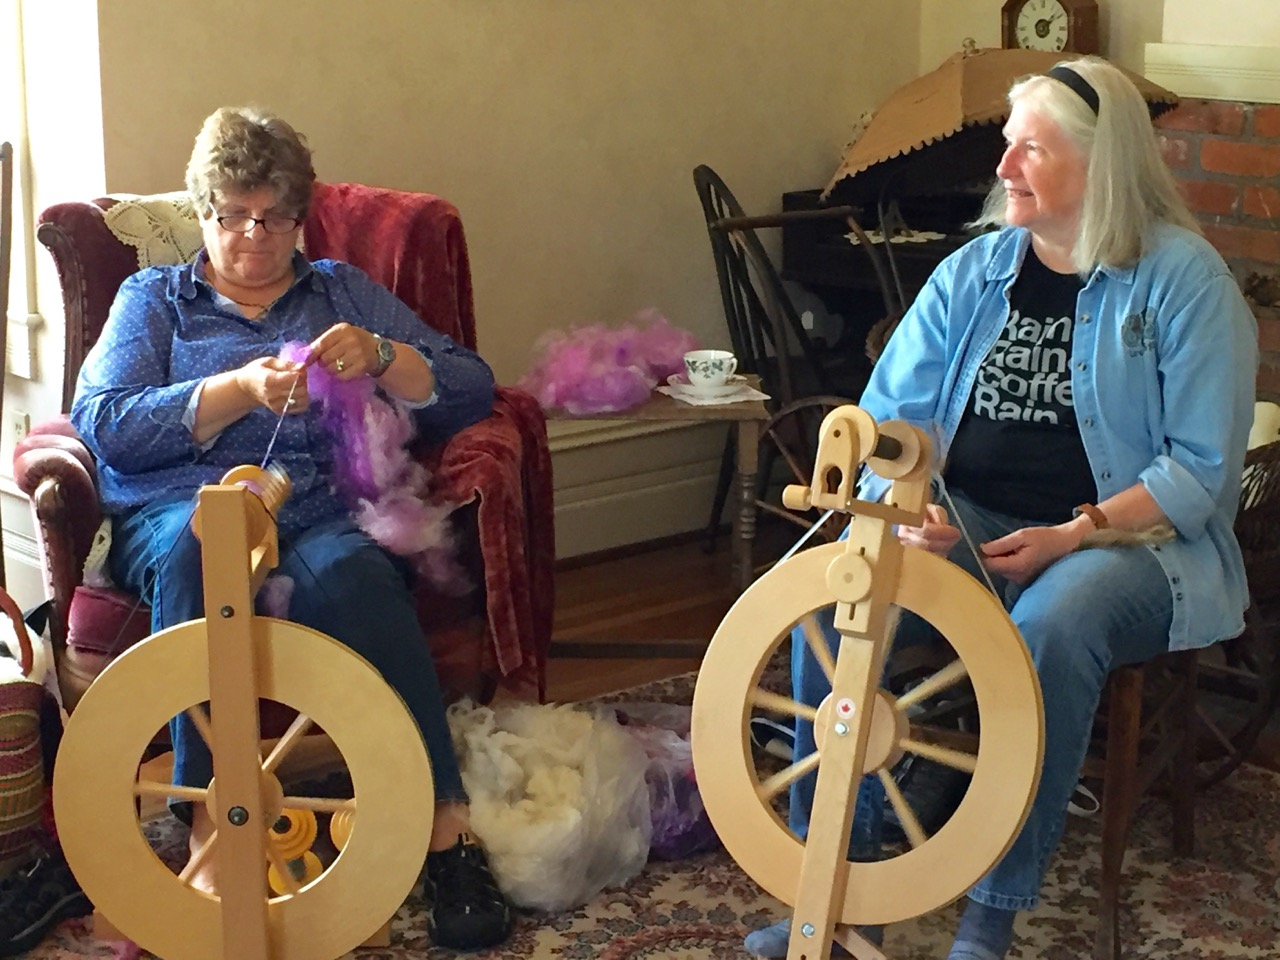 Spinning wool in the front parlor